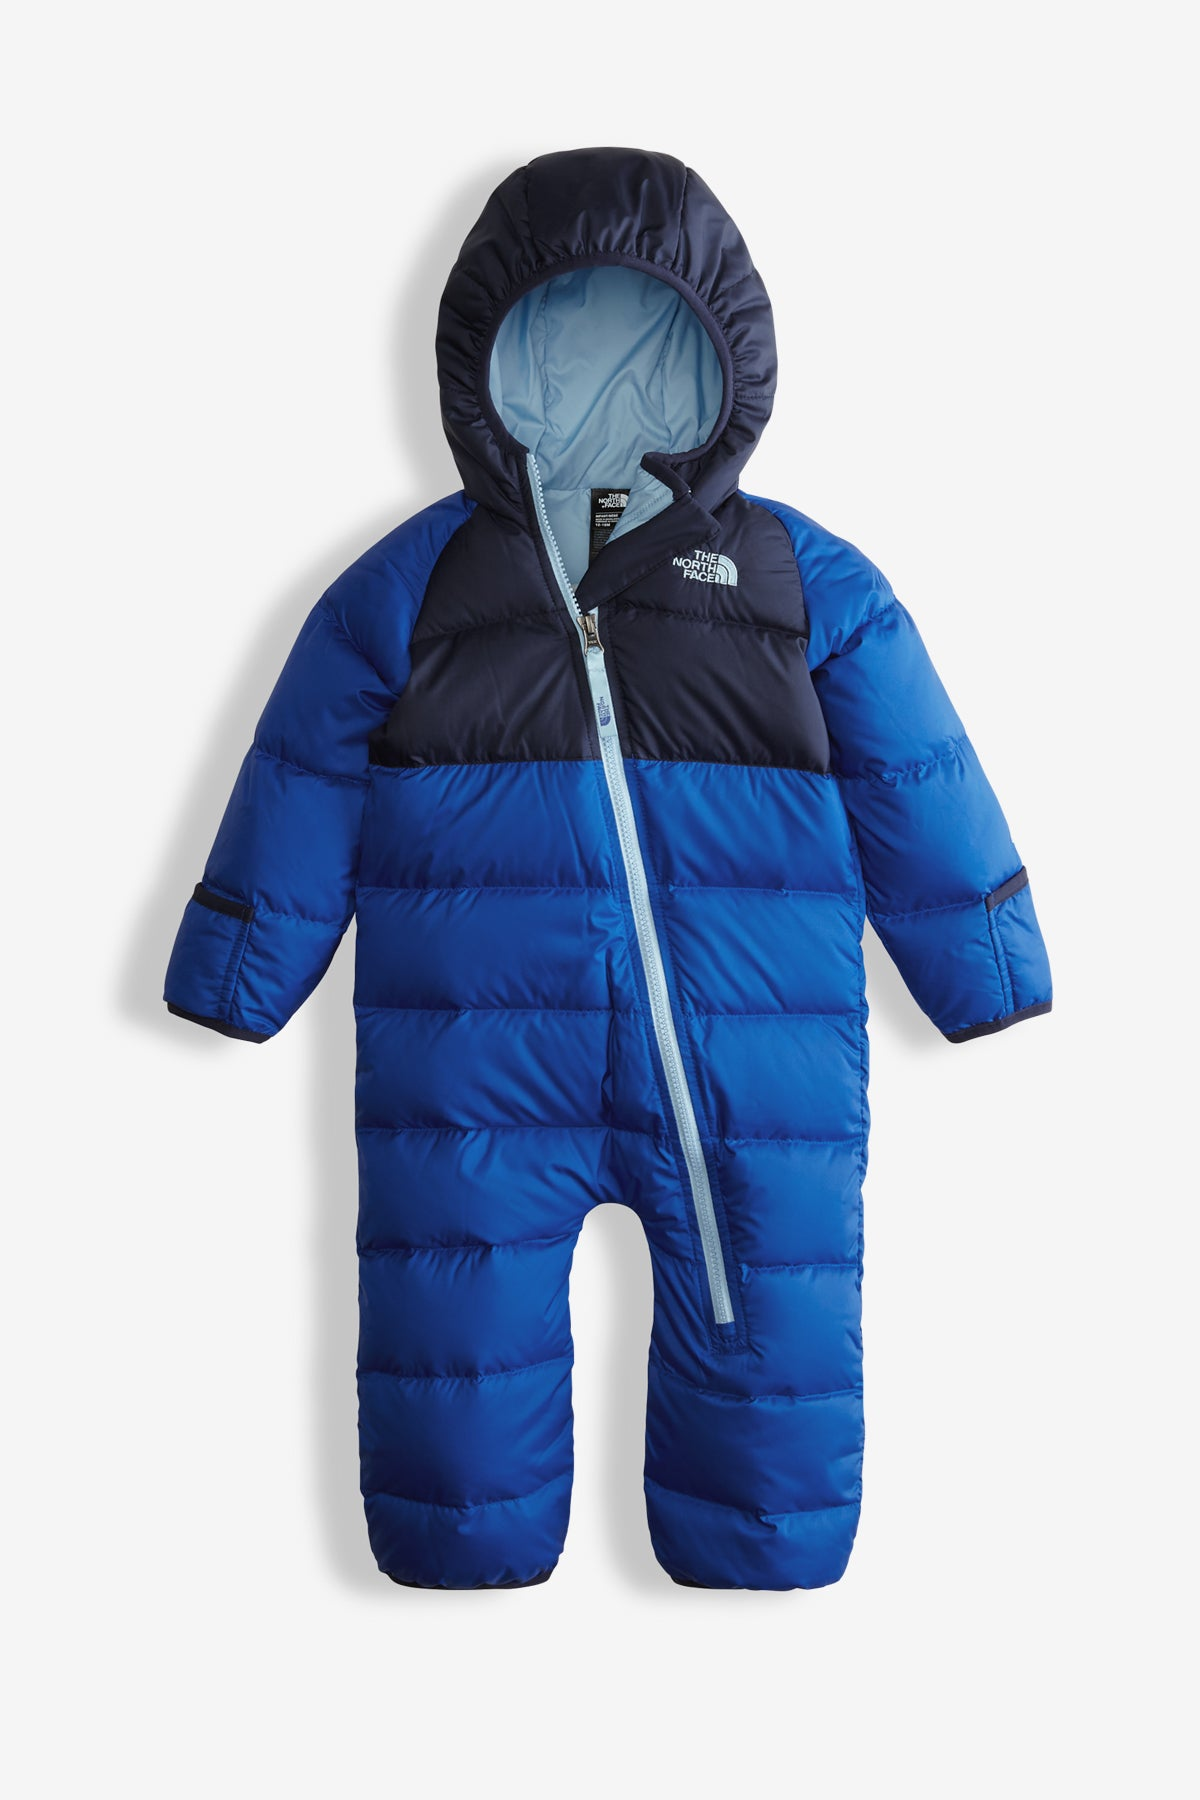 25ad7dc17 The North Face Infant Lil' Snuggler Down Suit - Bright Cobalt Blue